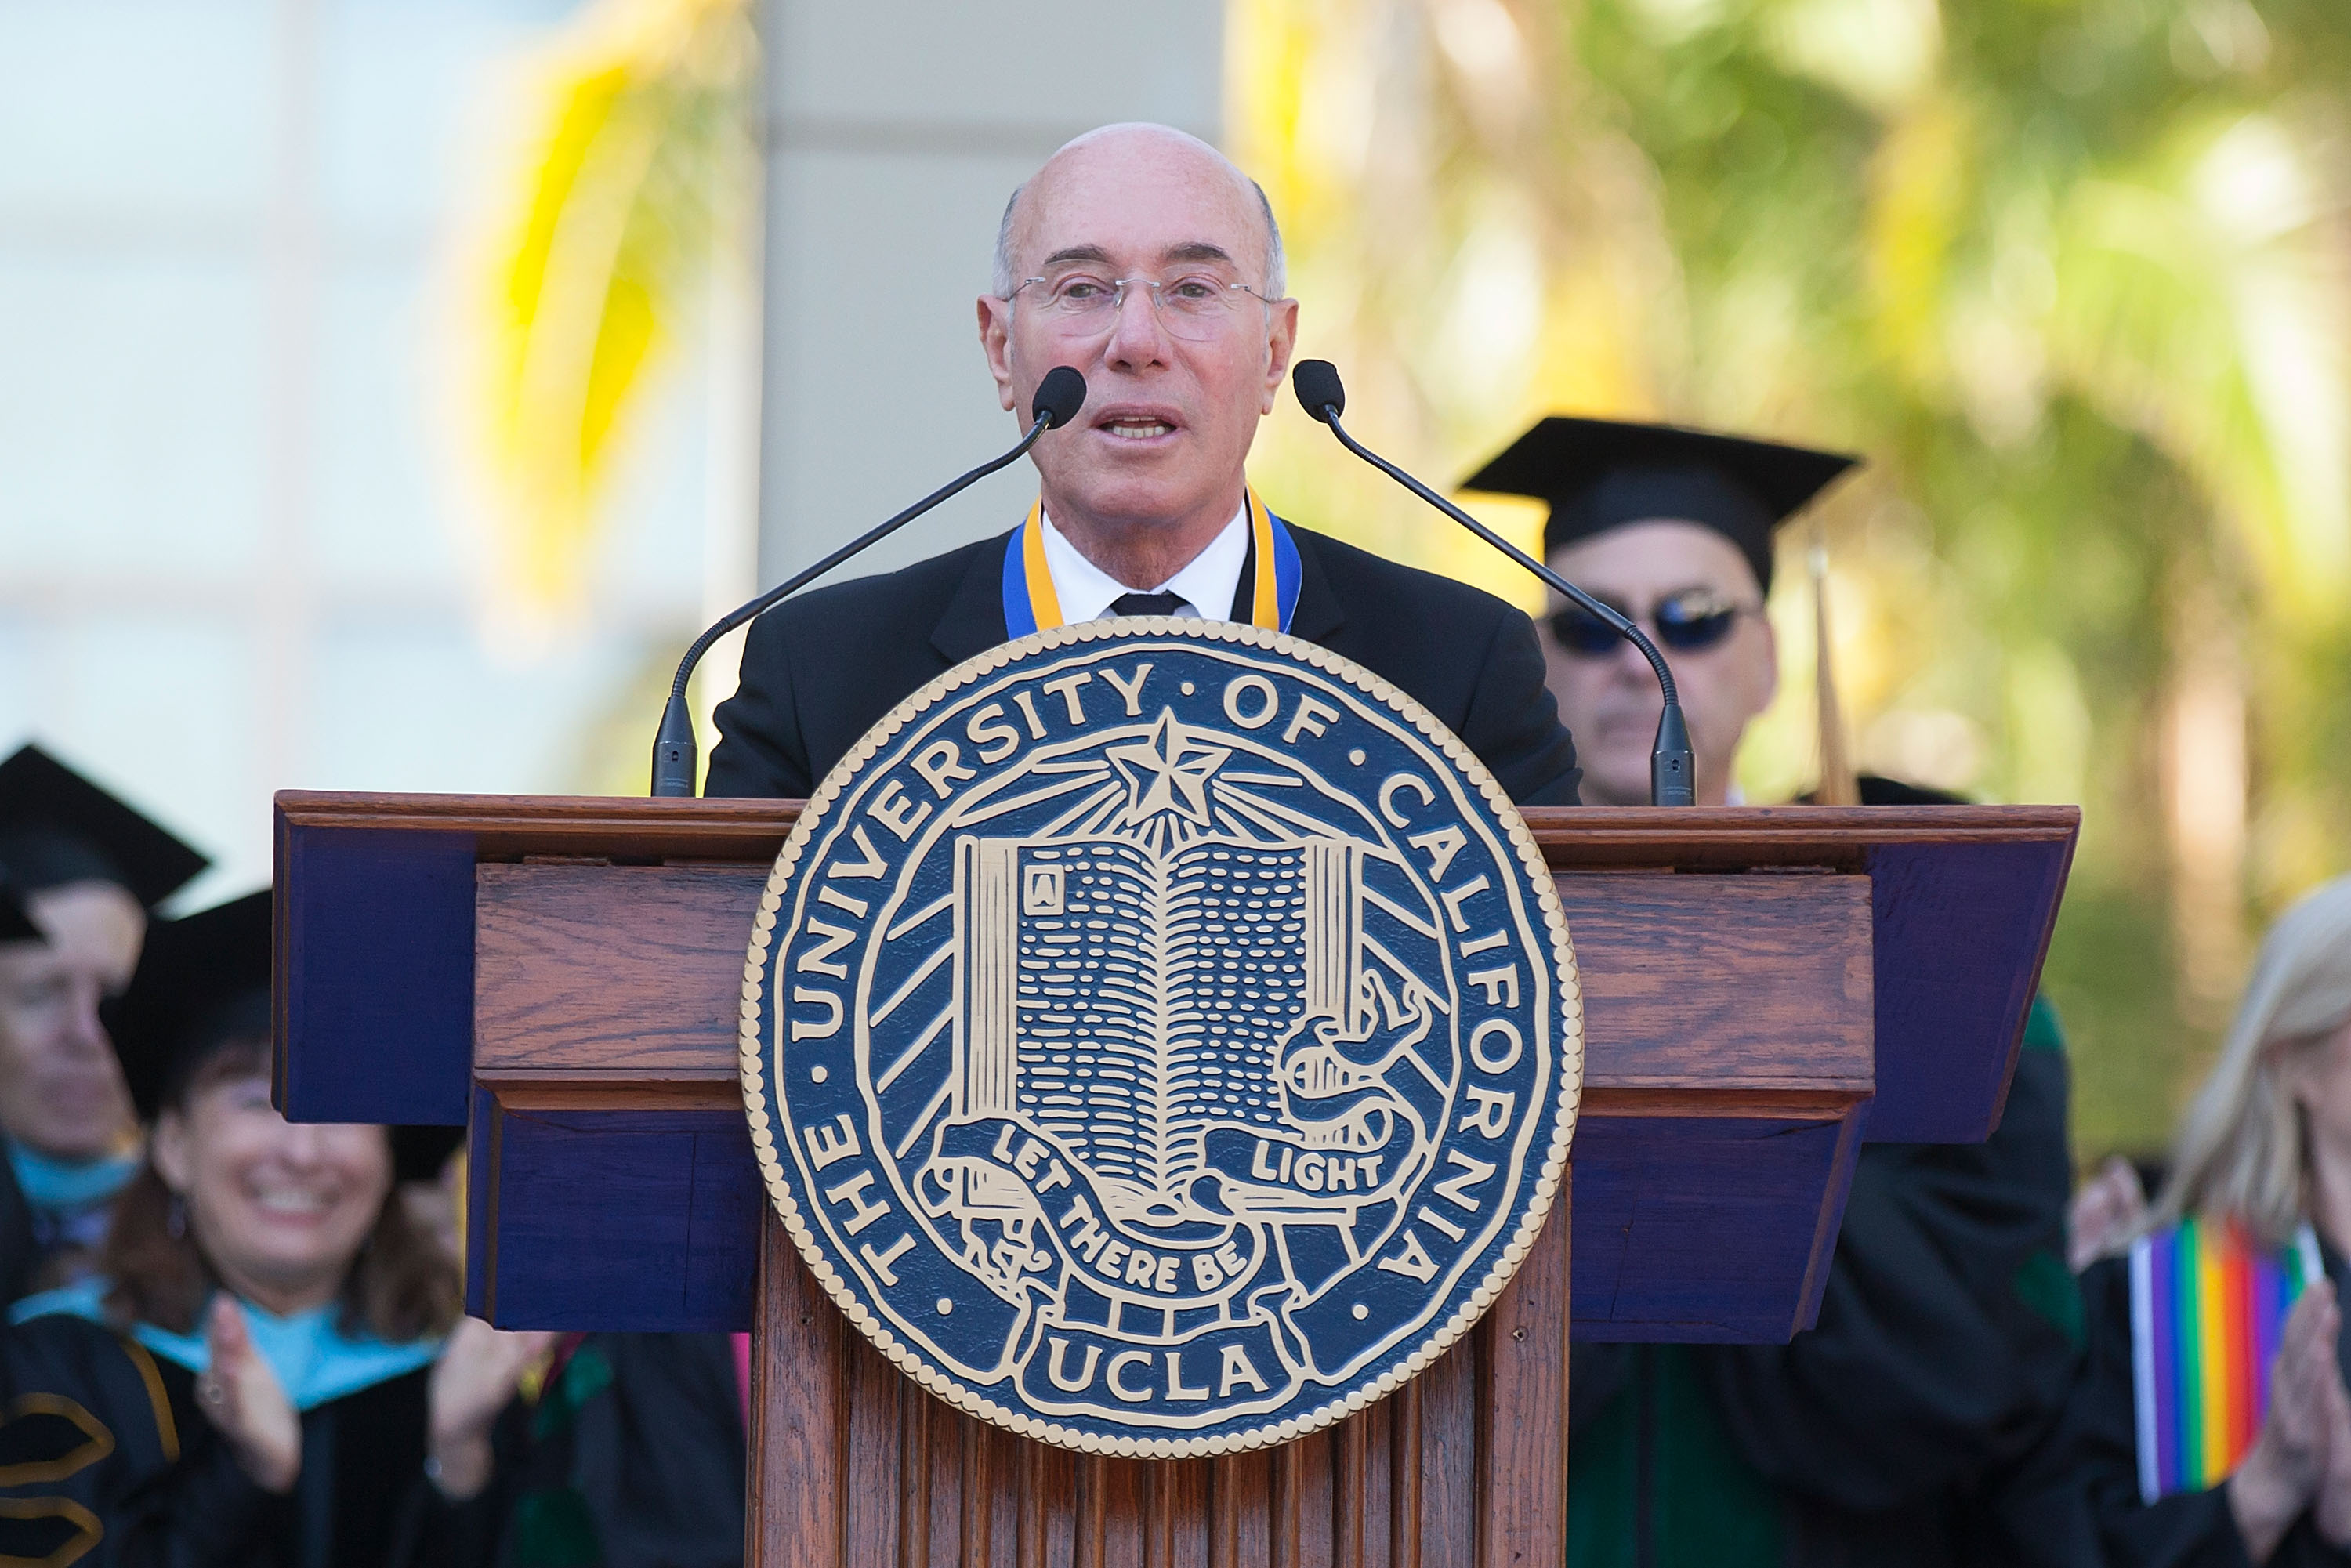 David Geffen Receives The UCLA Medal During UCLA's Hippocratic Oath Ceremony